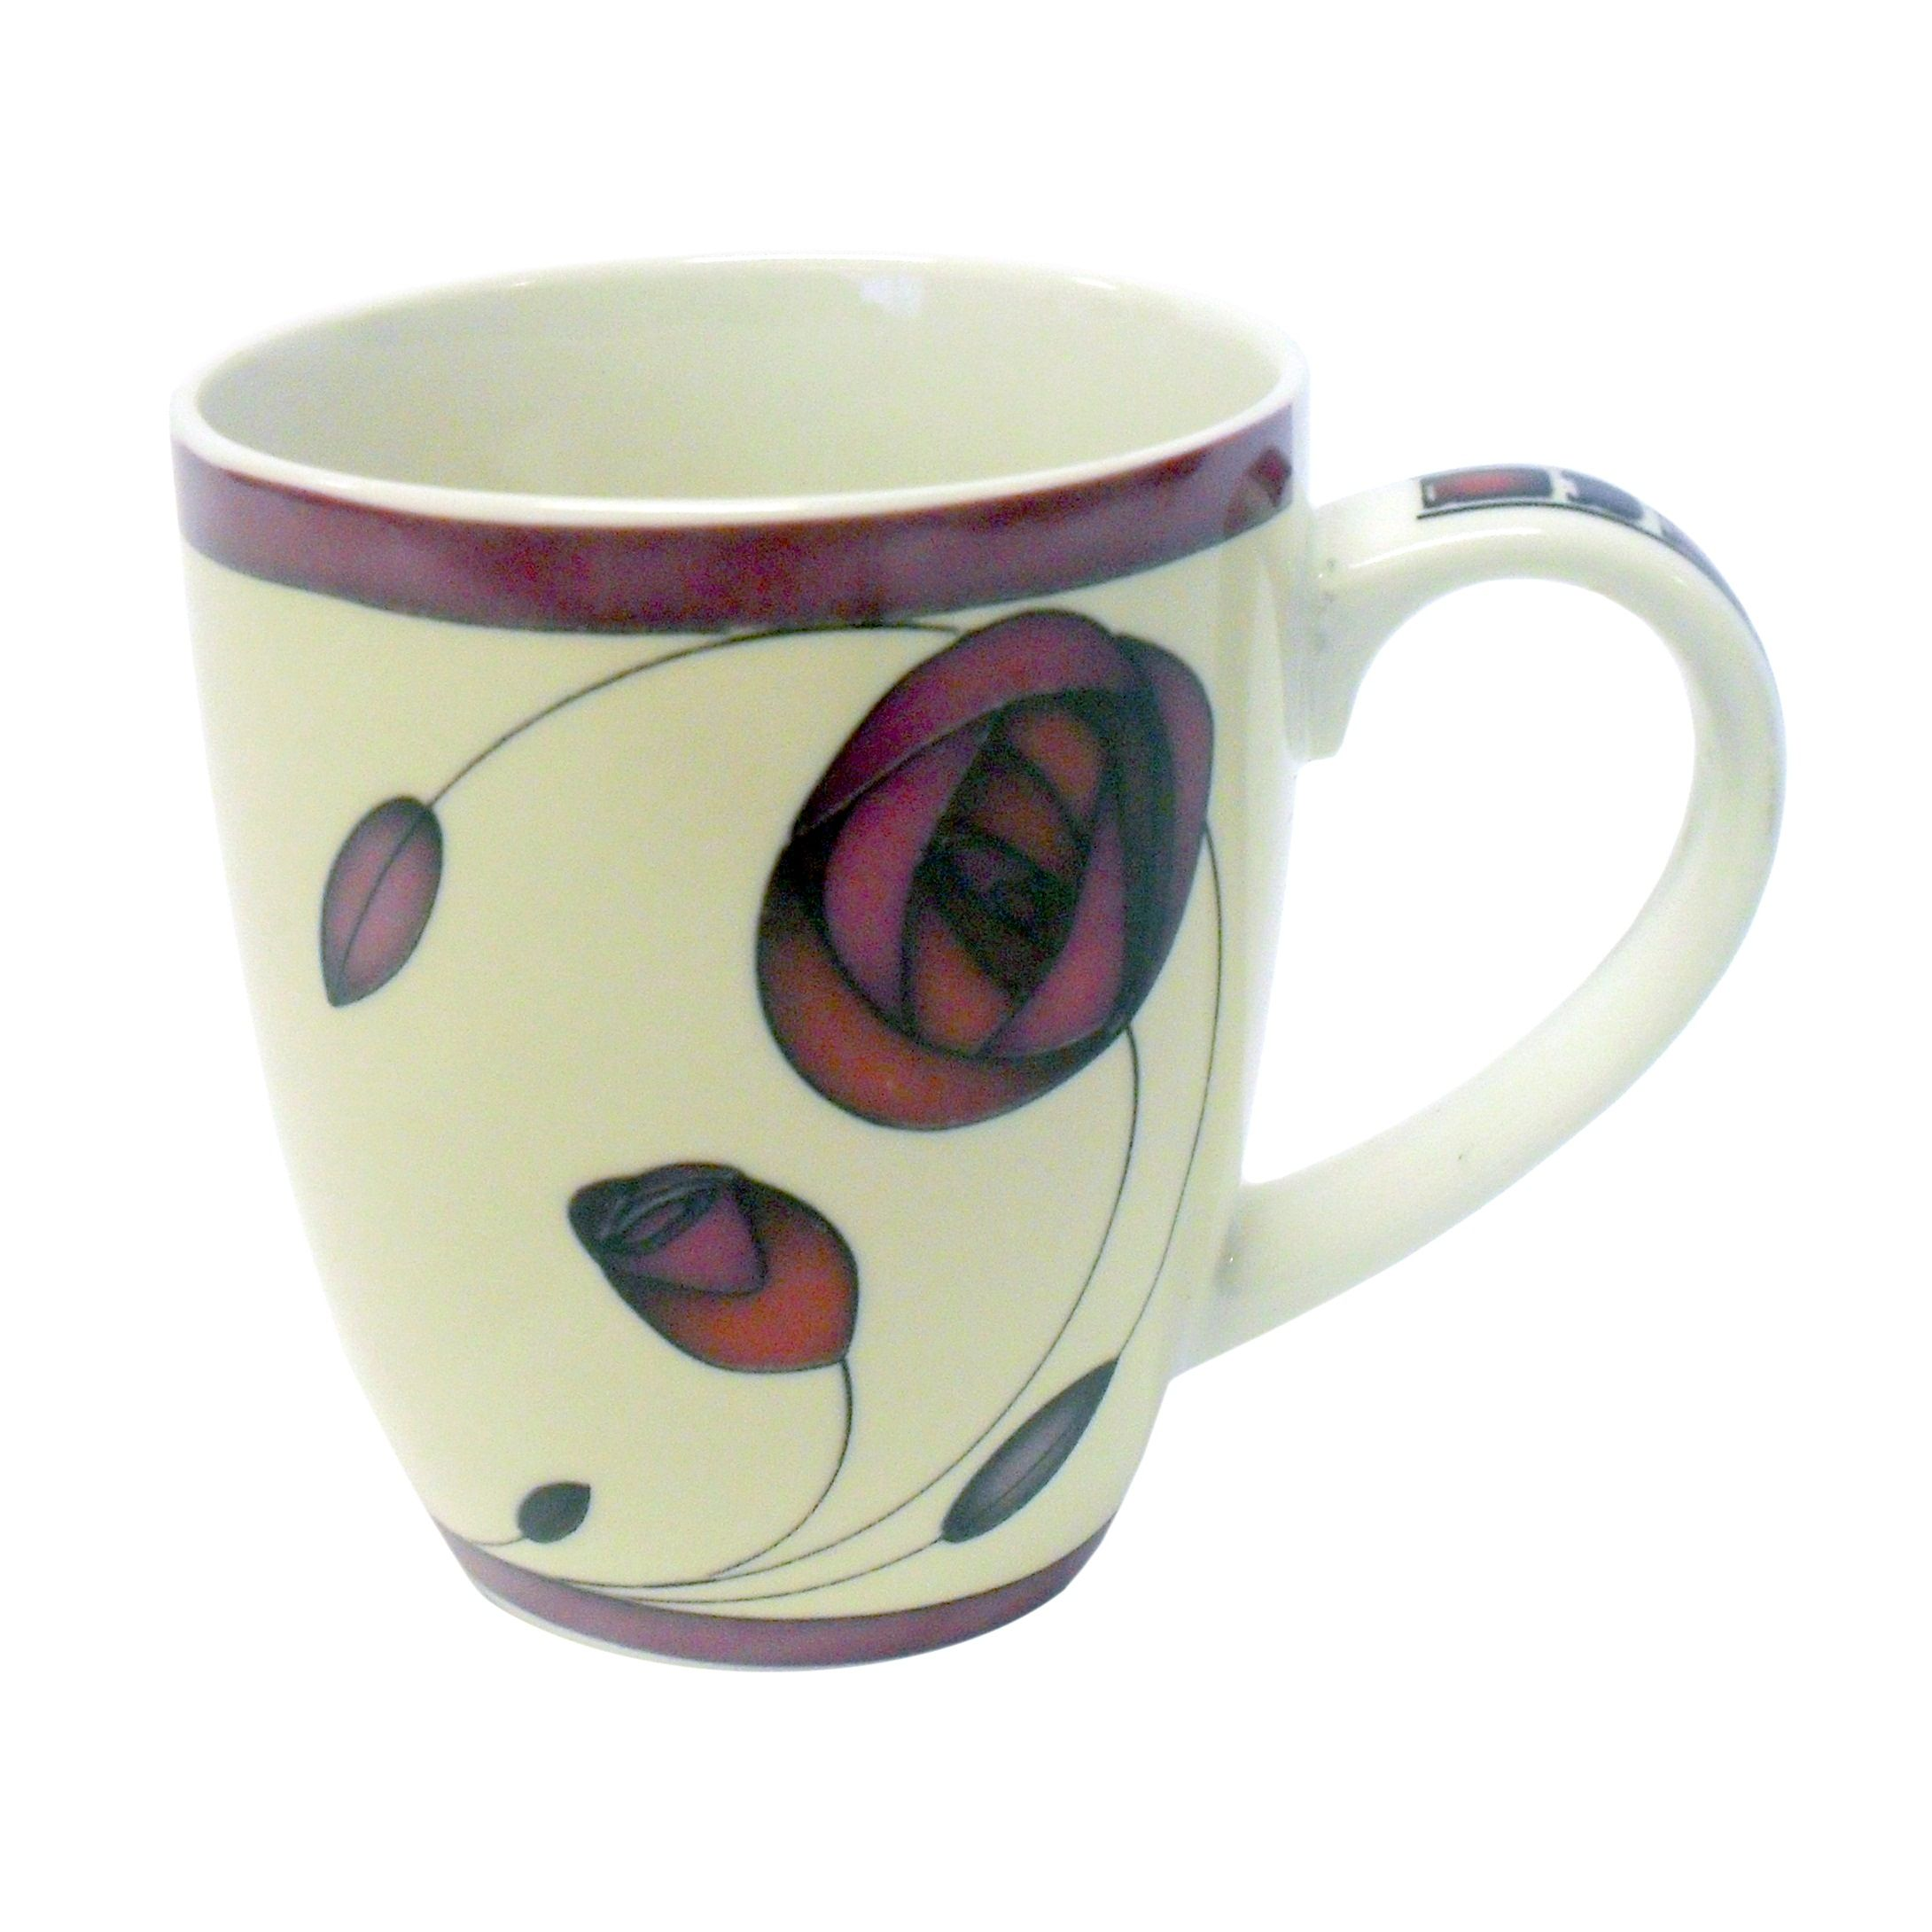 Charles Rennie Mackintosh Rose Plum - Bone China Mug I Style My Home Tradestock